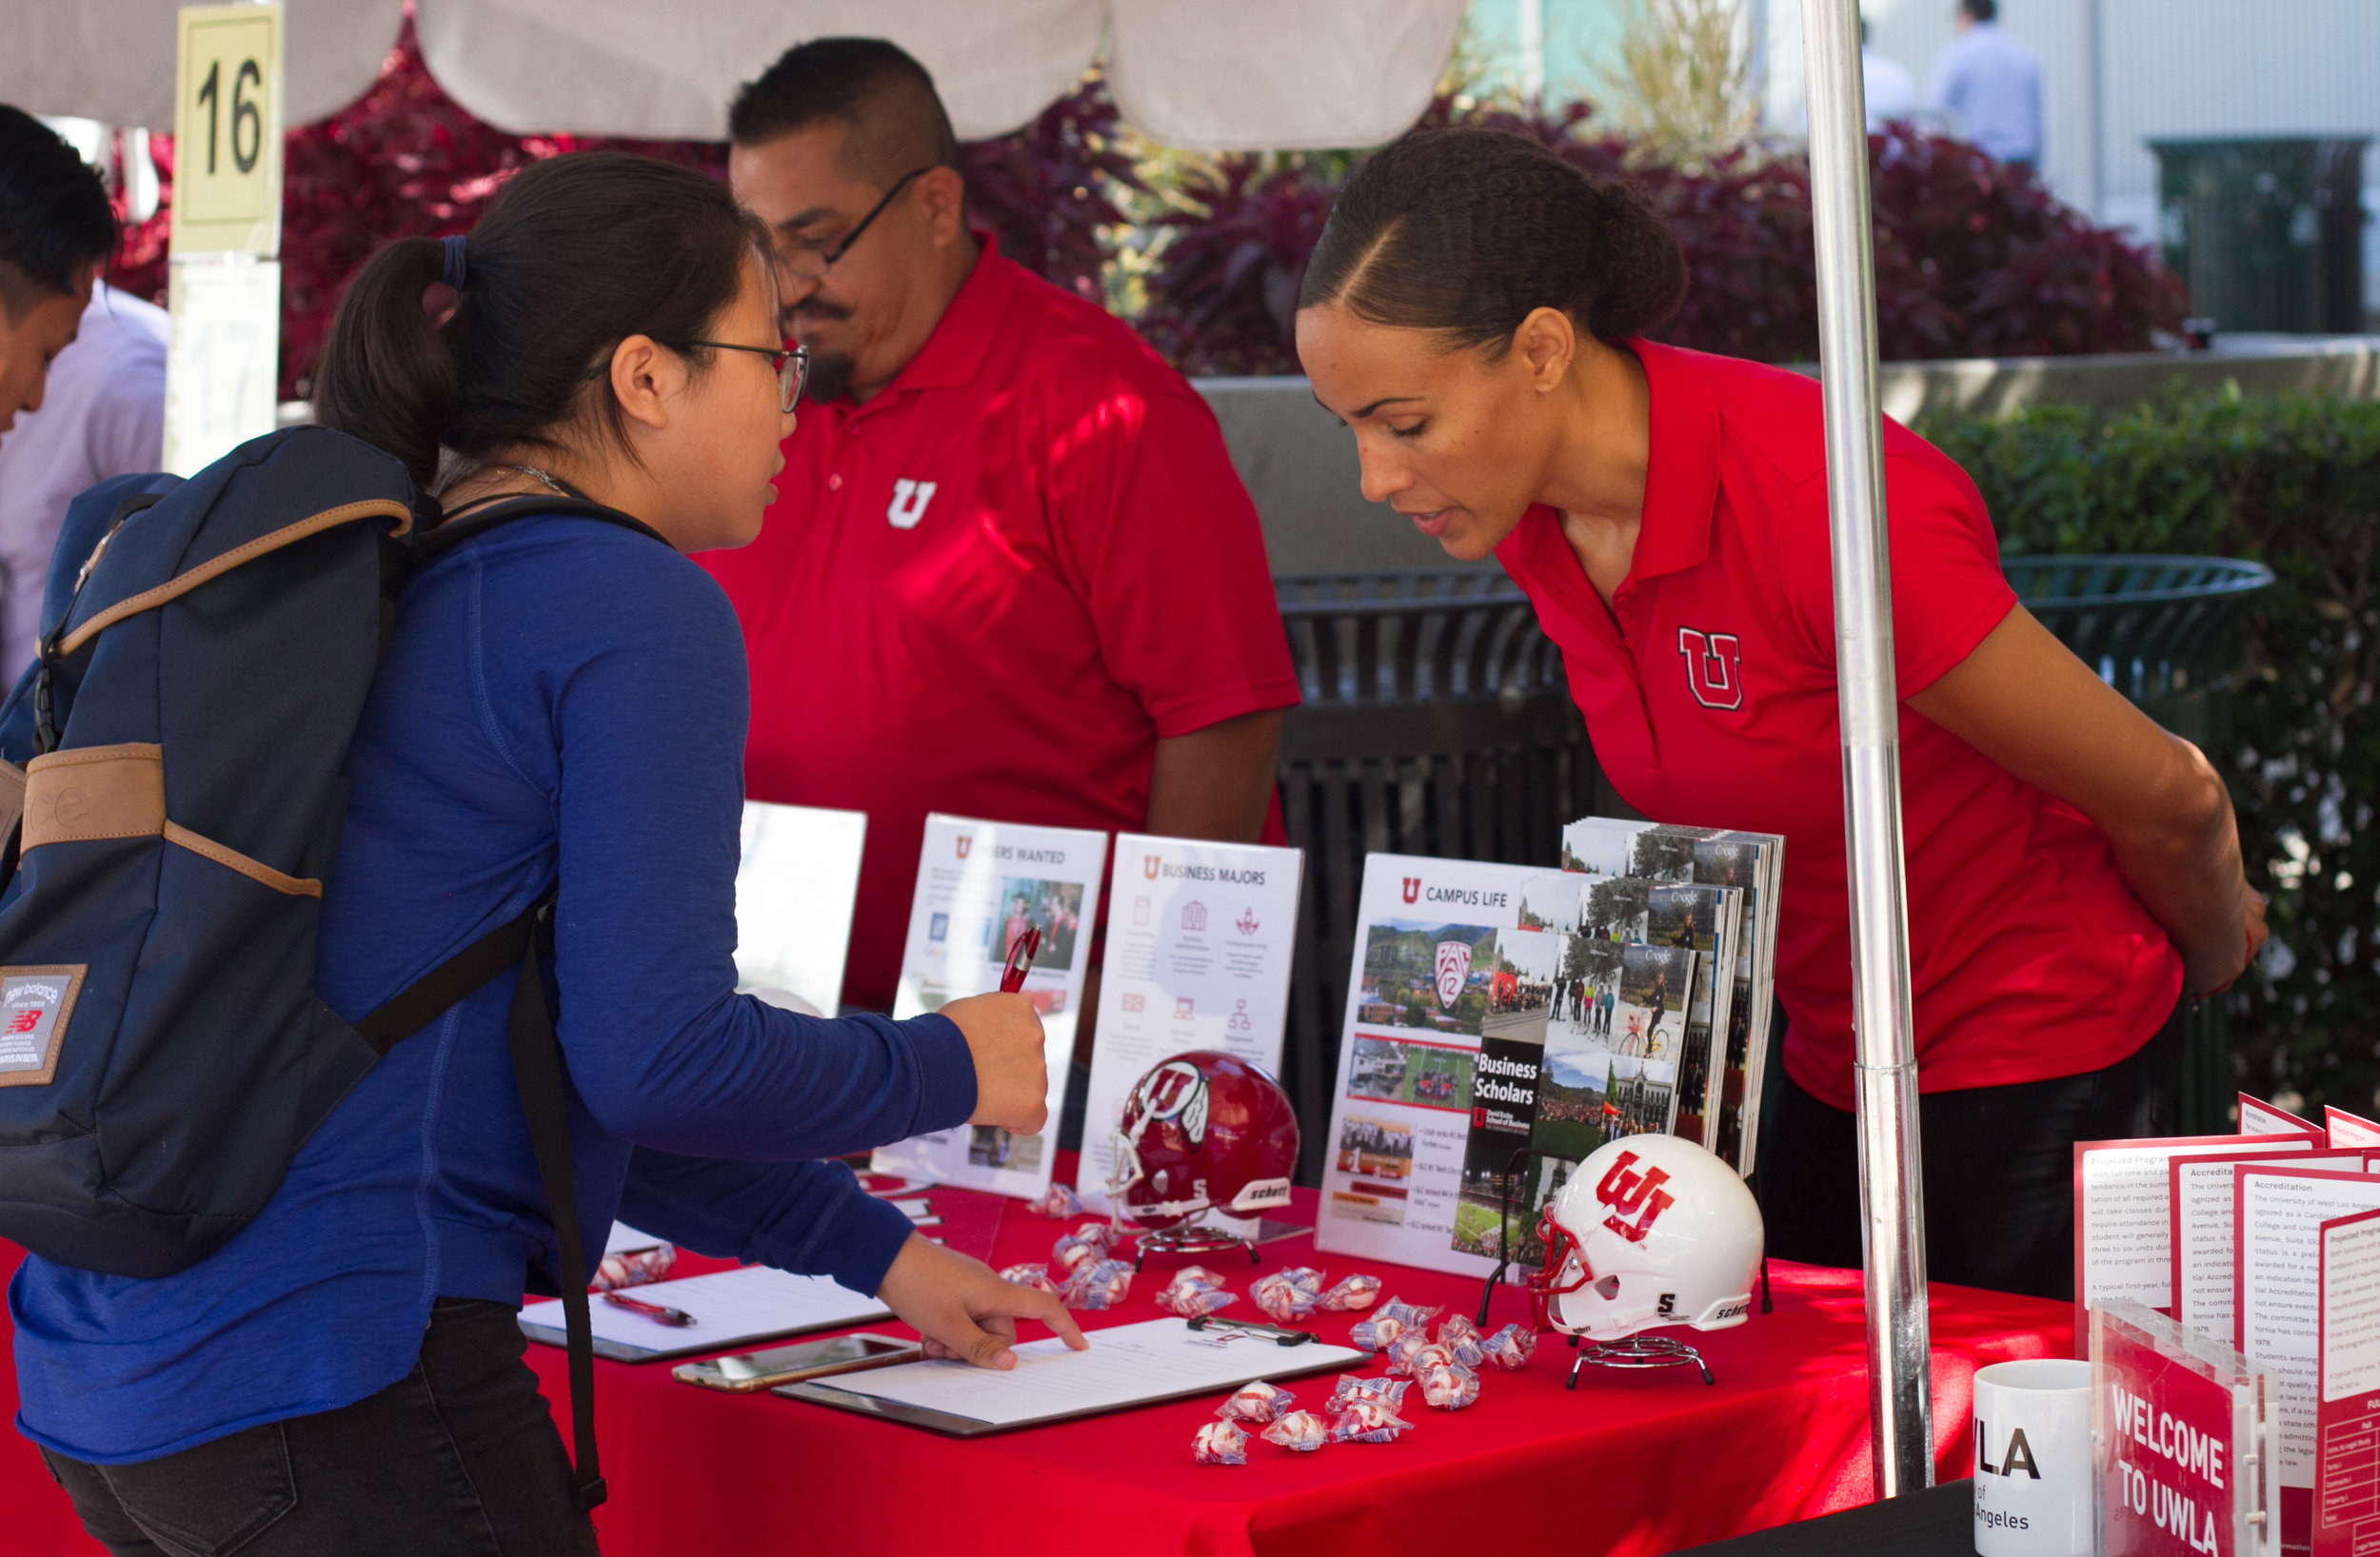 University of Utah Representative Kena Fuller (Right) helps Santa Monica College student Claire Wang (Left) to sign up for the Business Program offered at University of Utah at the College Fair in Santa Monica College in Santa Monica, Calif., October 10, 2017. (Photo By: Ripsime Avetisyan/Corsair Staff)